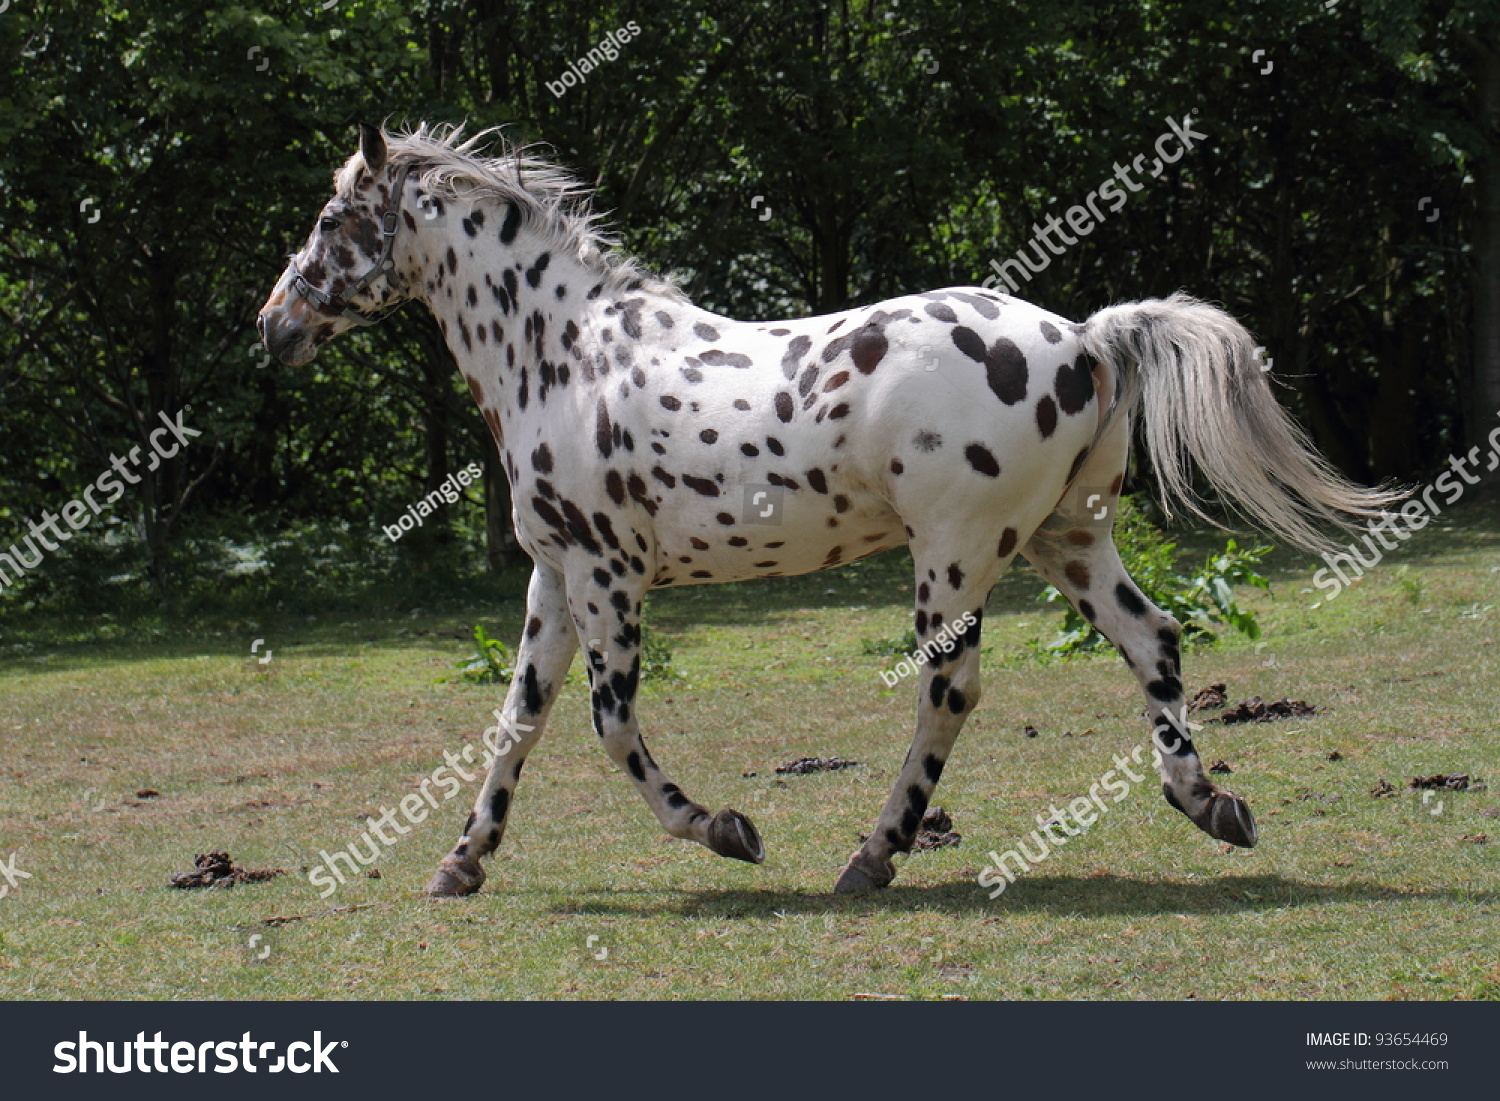 Appaloosa Horse White Horse Black Spots Stock Photo Edit Now 93654469